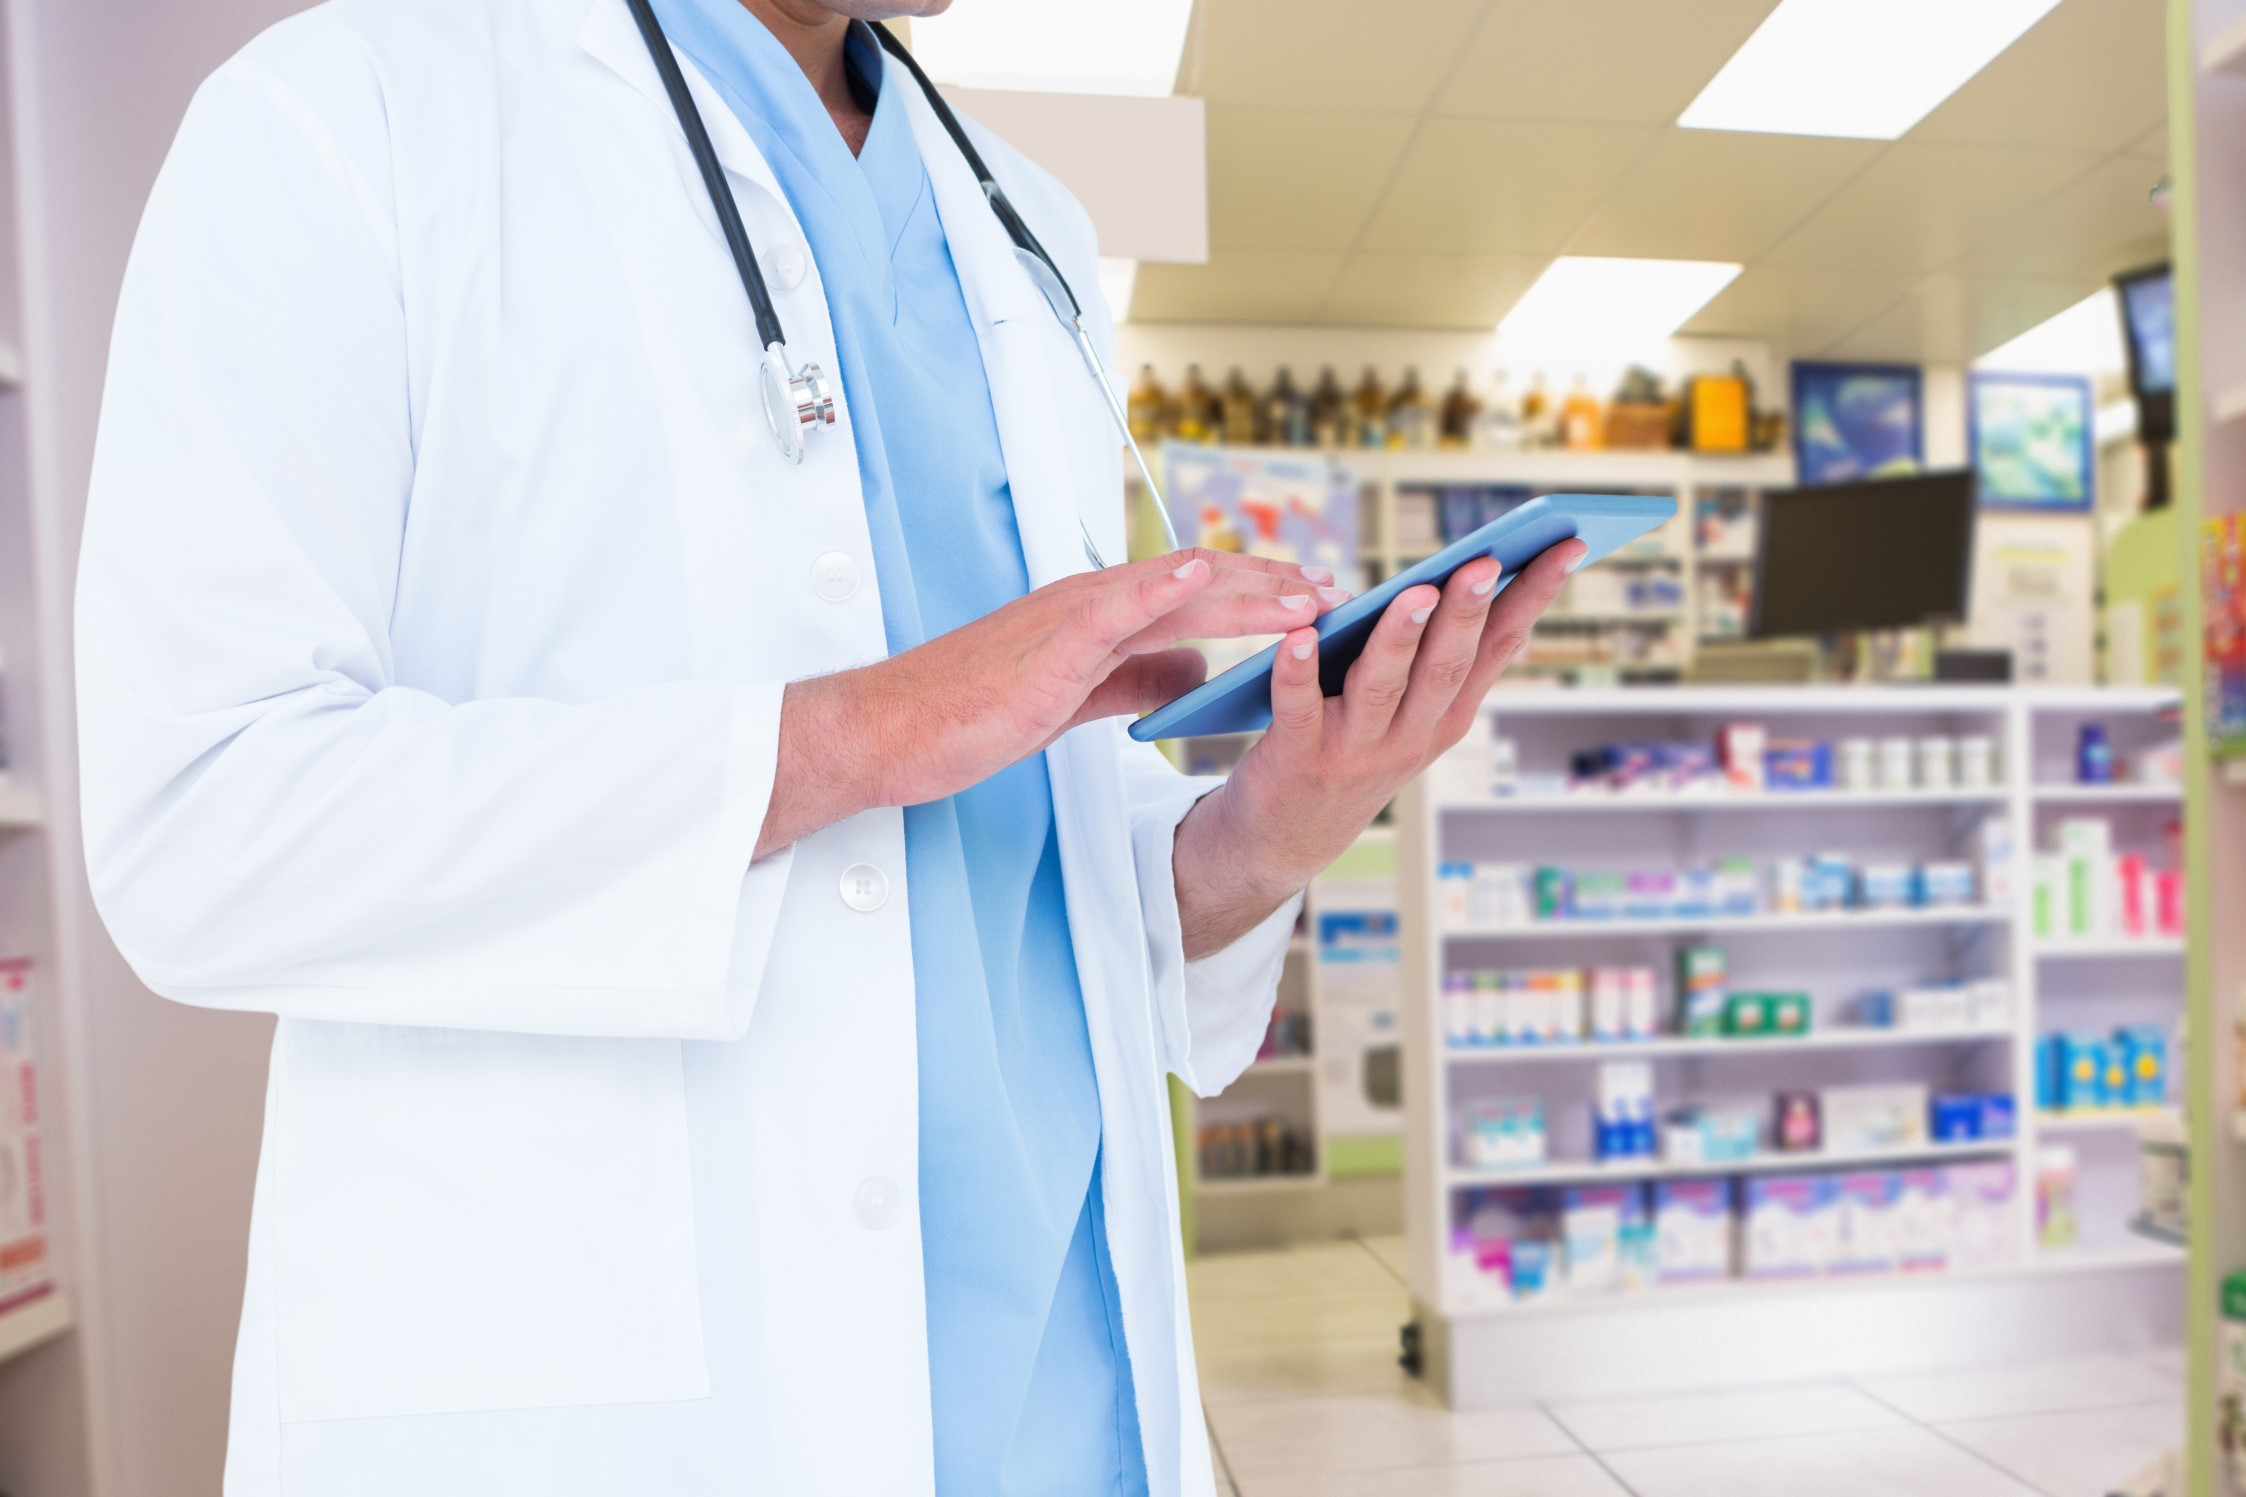 transformación digital en la industria farmacéutica